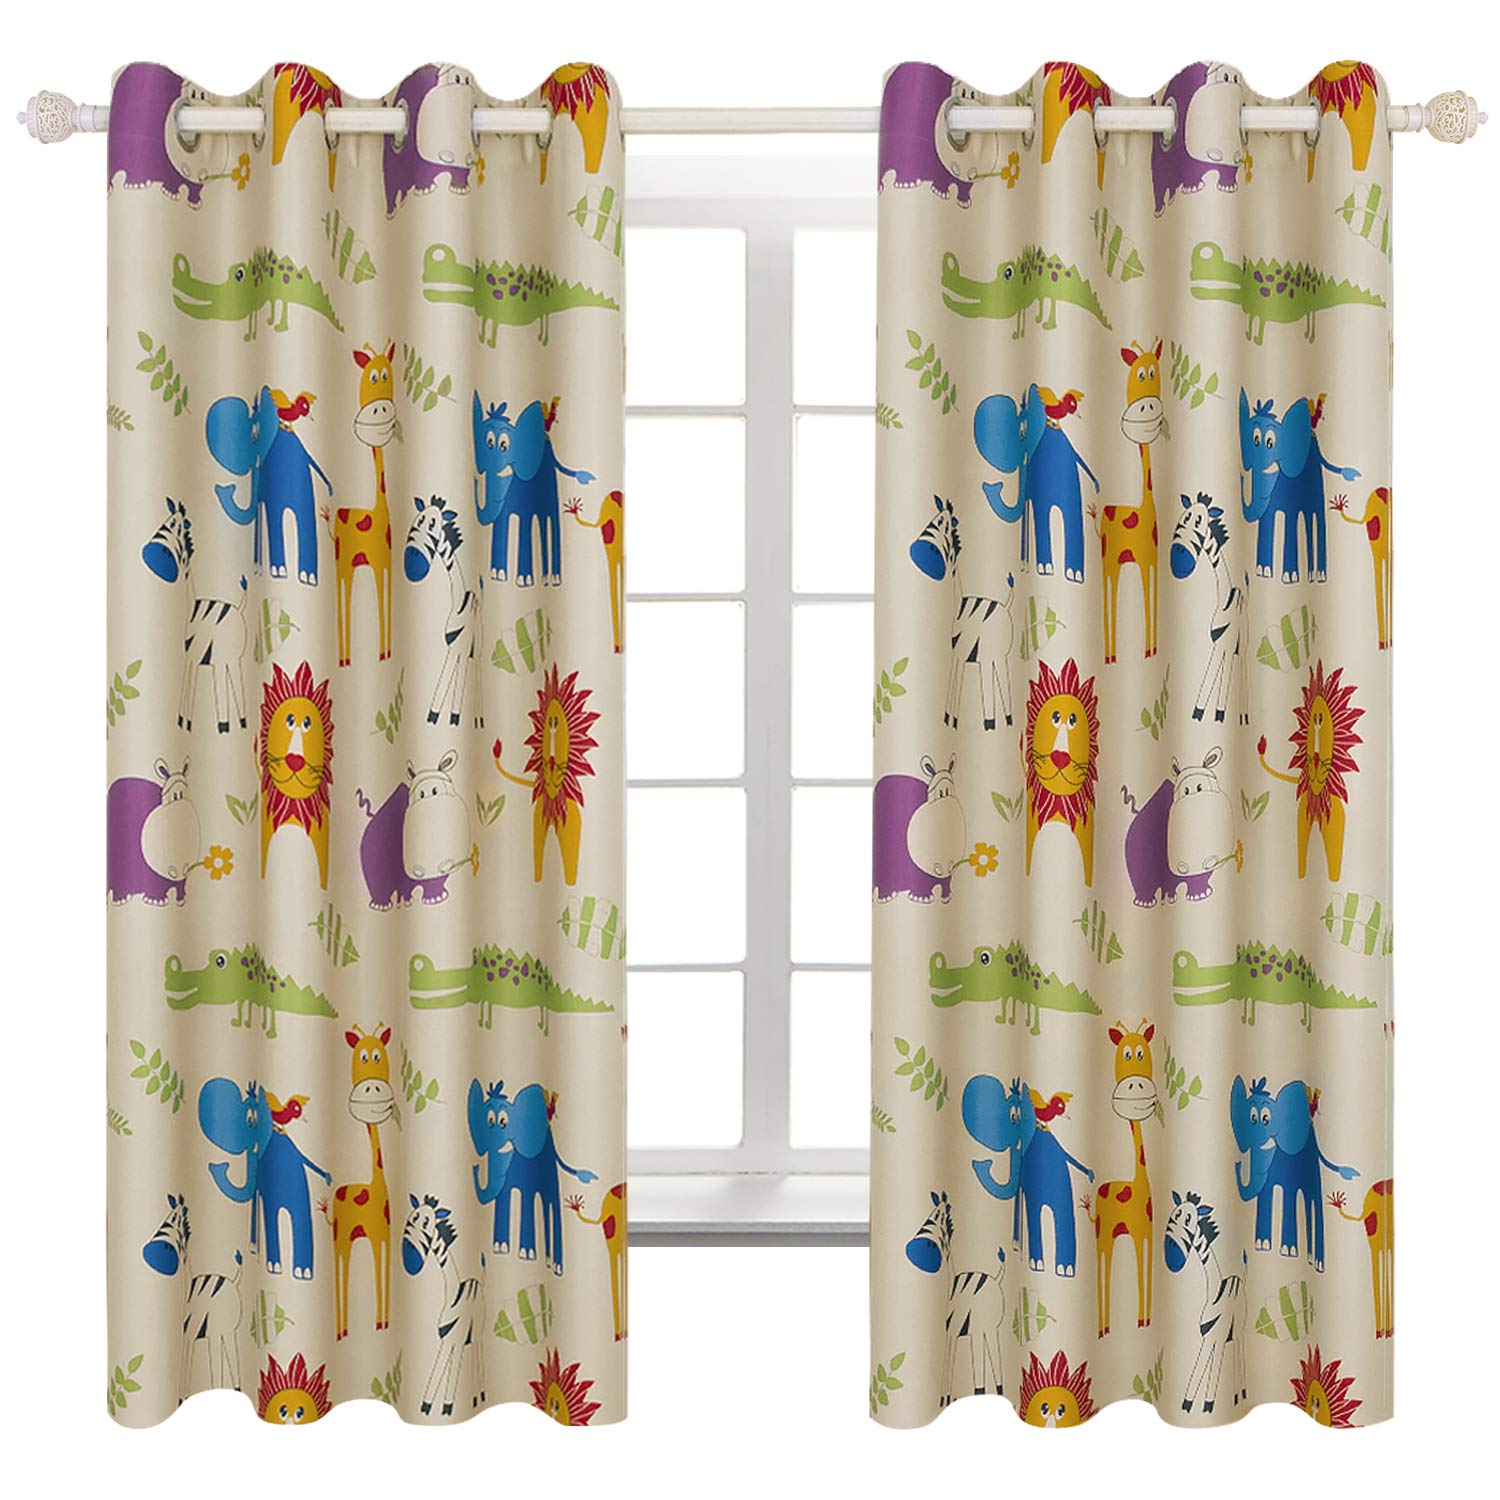 BGment Kids Blackout Curtains   Grommet Thermal Insulated Room Darkening  Printed Animal Zoo Patterns Nursery And Kids Bedroom Curtains, Set Of 2  Curtain ...